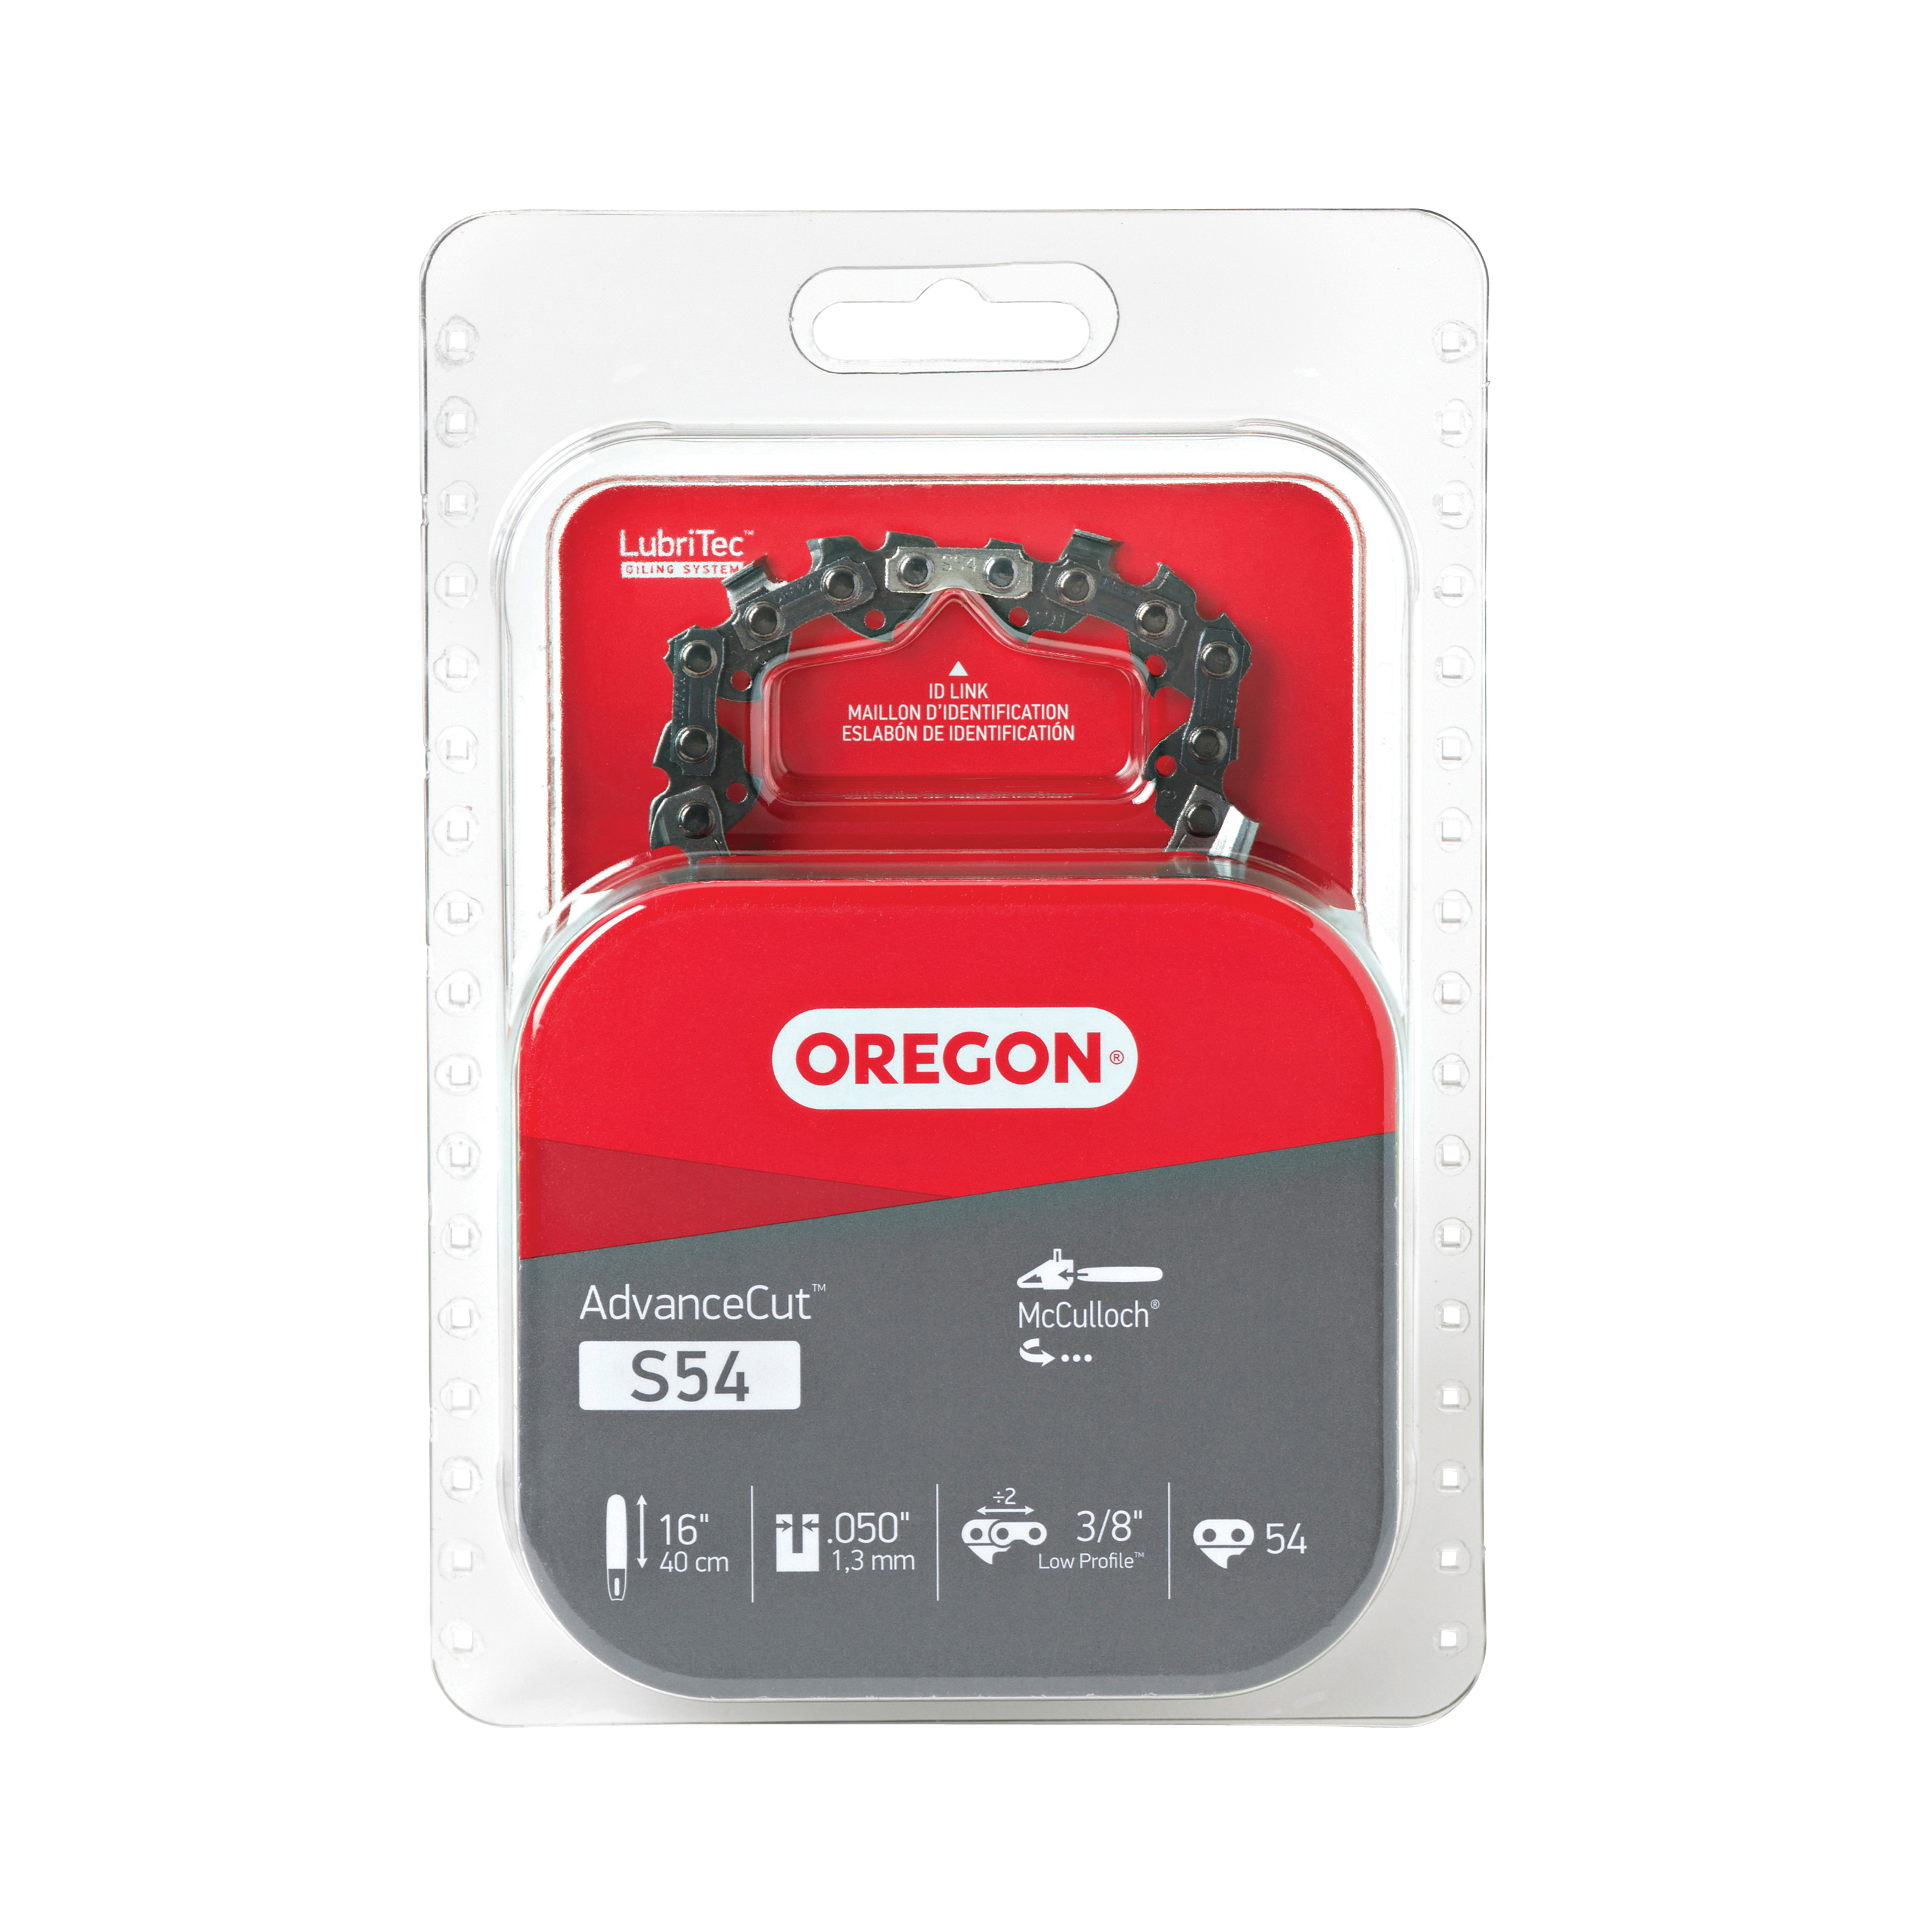 Picture of Oregon S54 Chainsaw Chain, 16 in L Bar, 0.05 Gauge, 3/8 in TPI/Pitch, 54 -Link